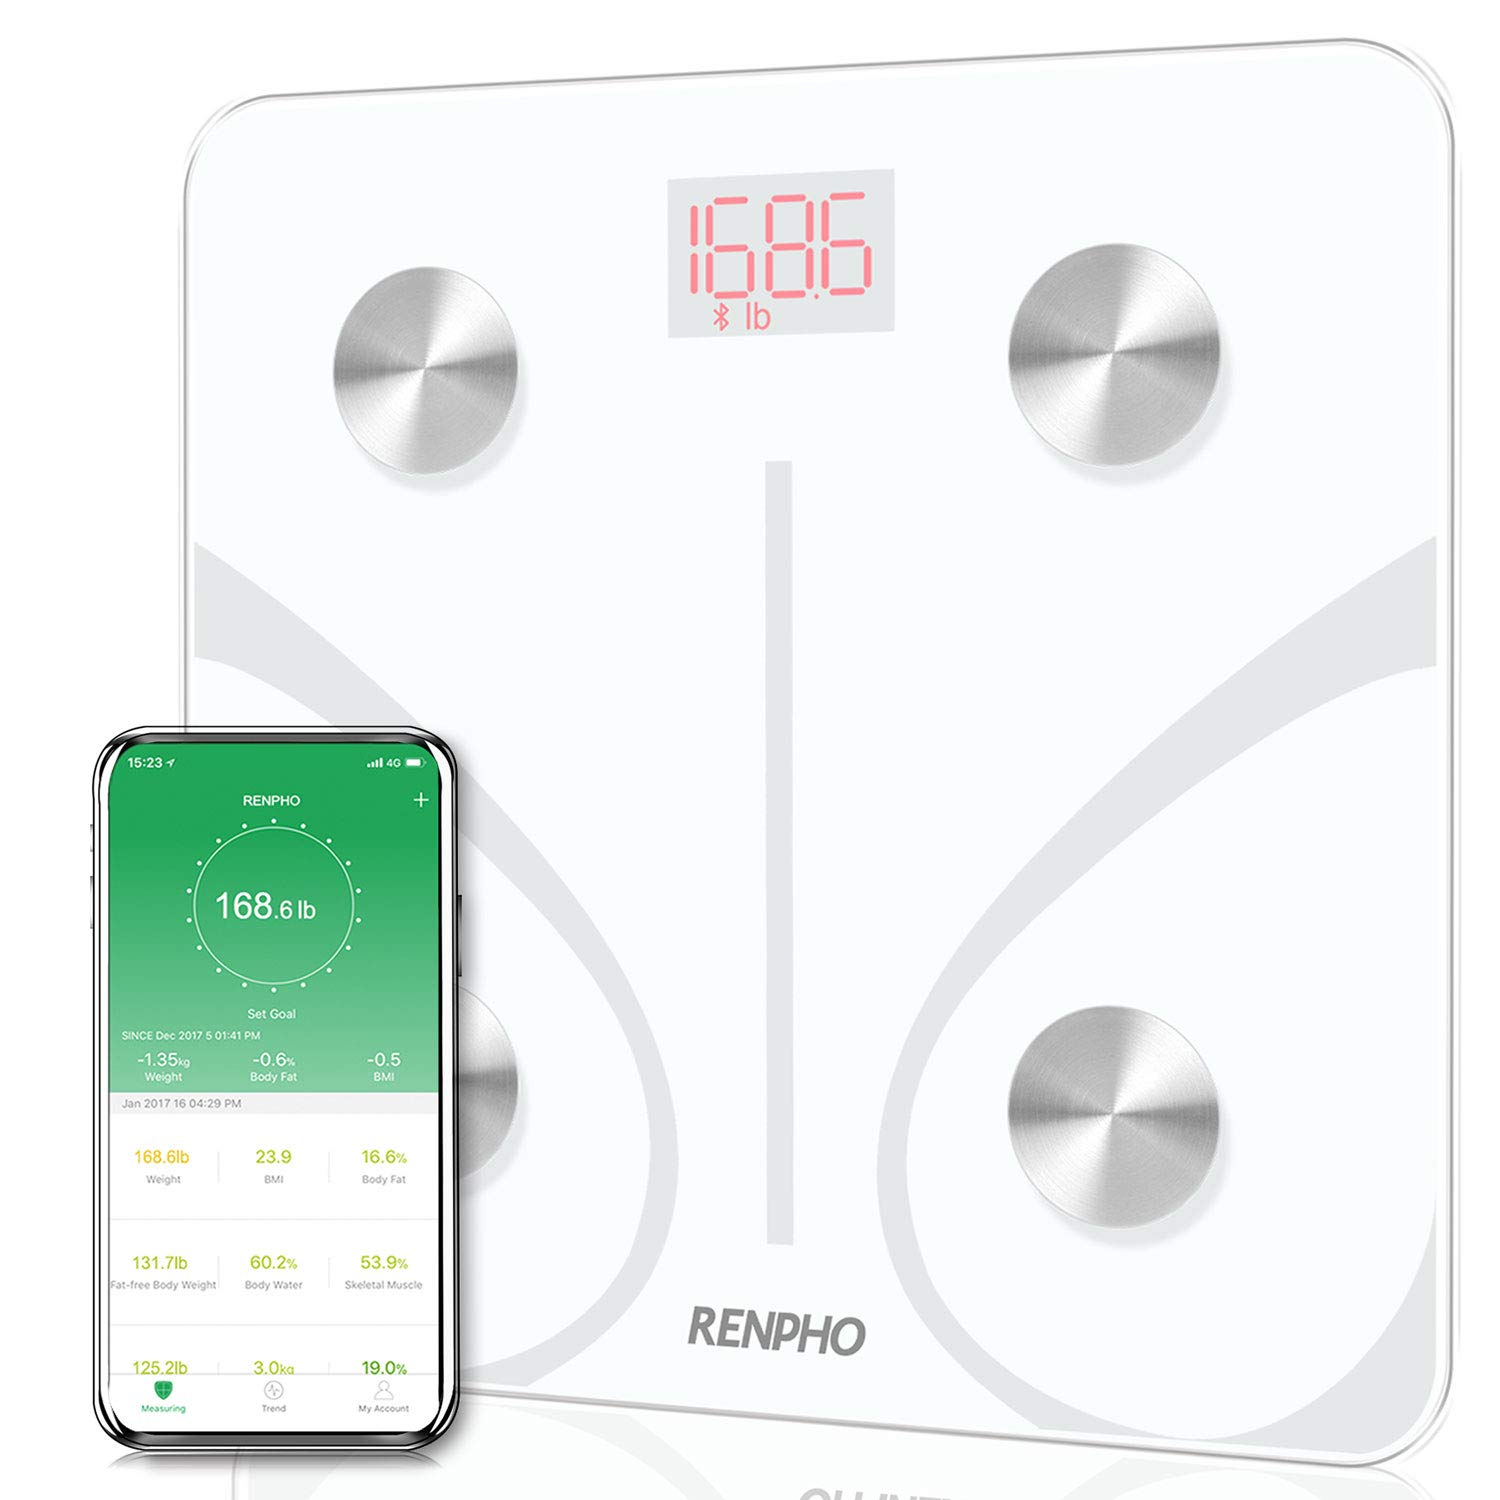 RENPHO Bluetooth Body Fat Scale Smart BMI Scale Digital Bathroom Wireless Weight Scale, Body Composition Analyzer with Smartphone App 396 lbs - White